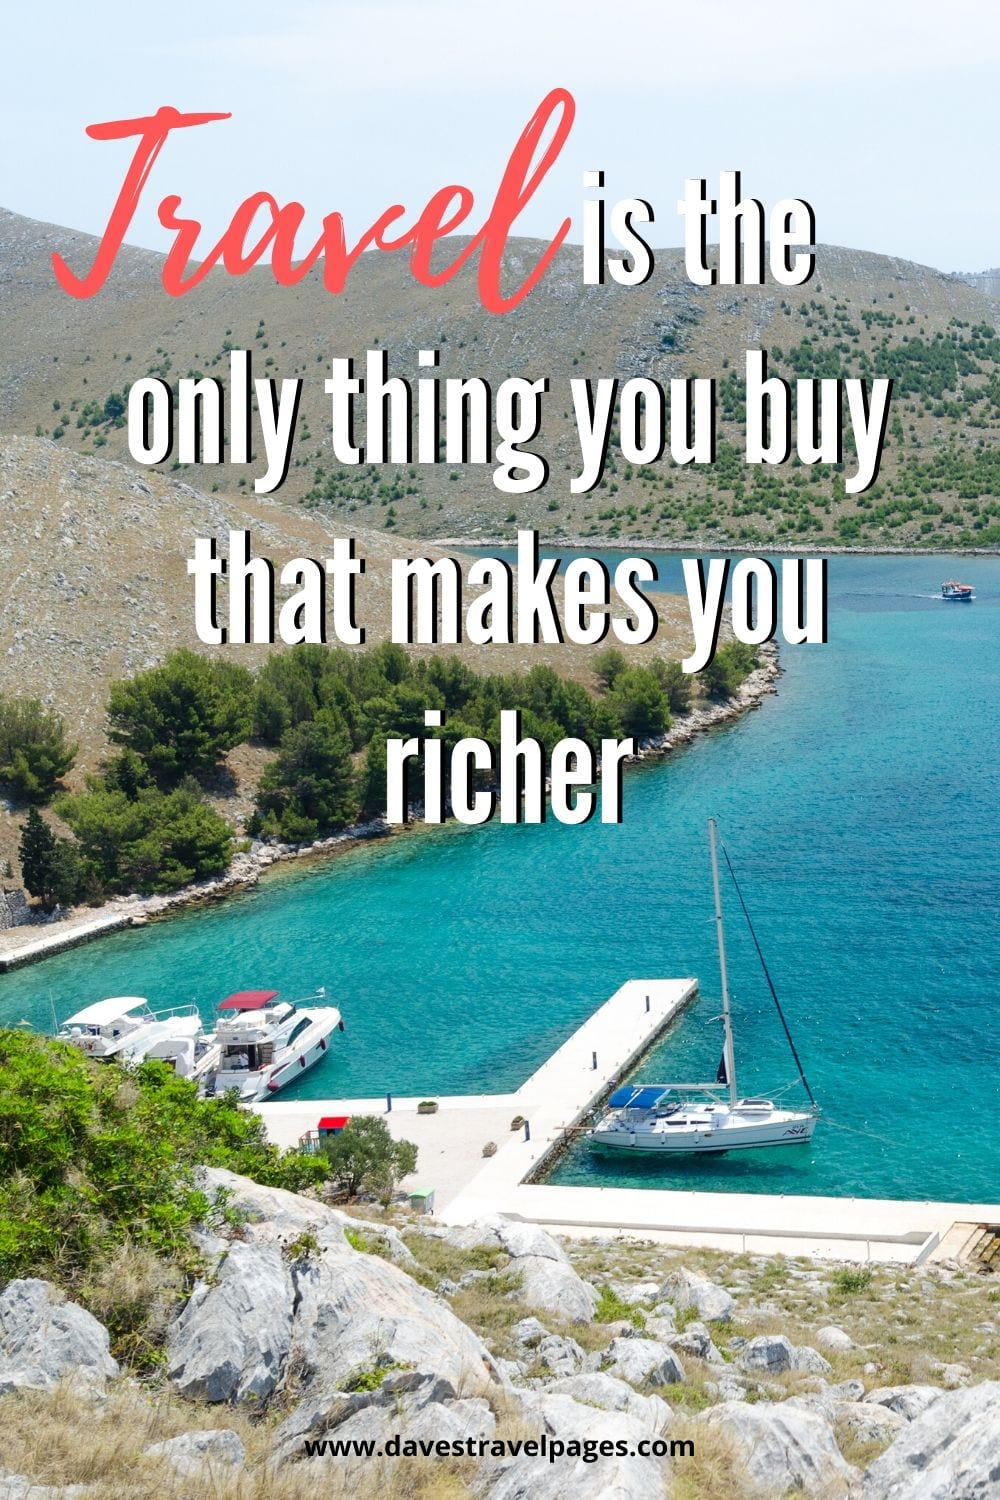 Best travel quote ever: Travel is the only thing you buy that makes you richer""